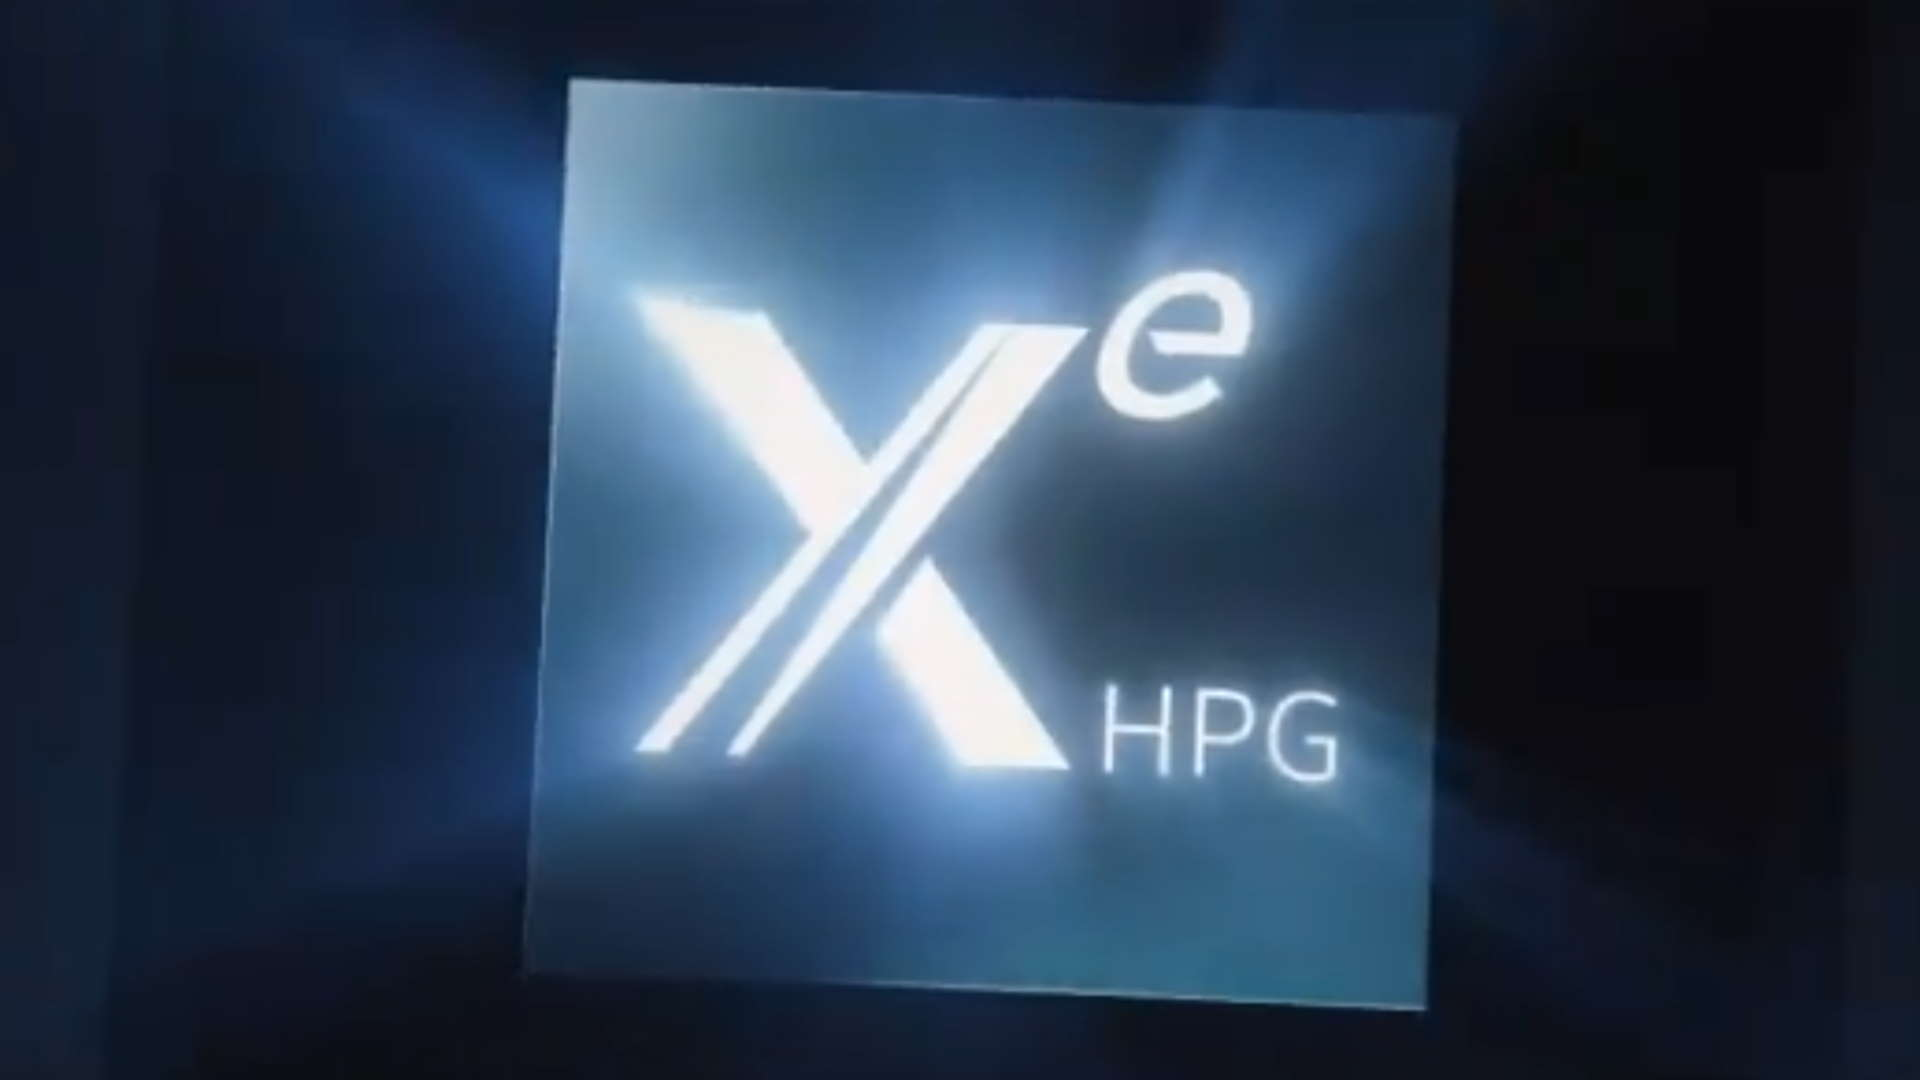 New Intel Xe graphics card teased with hidden messages, may be revealed March 23